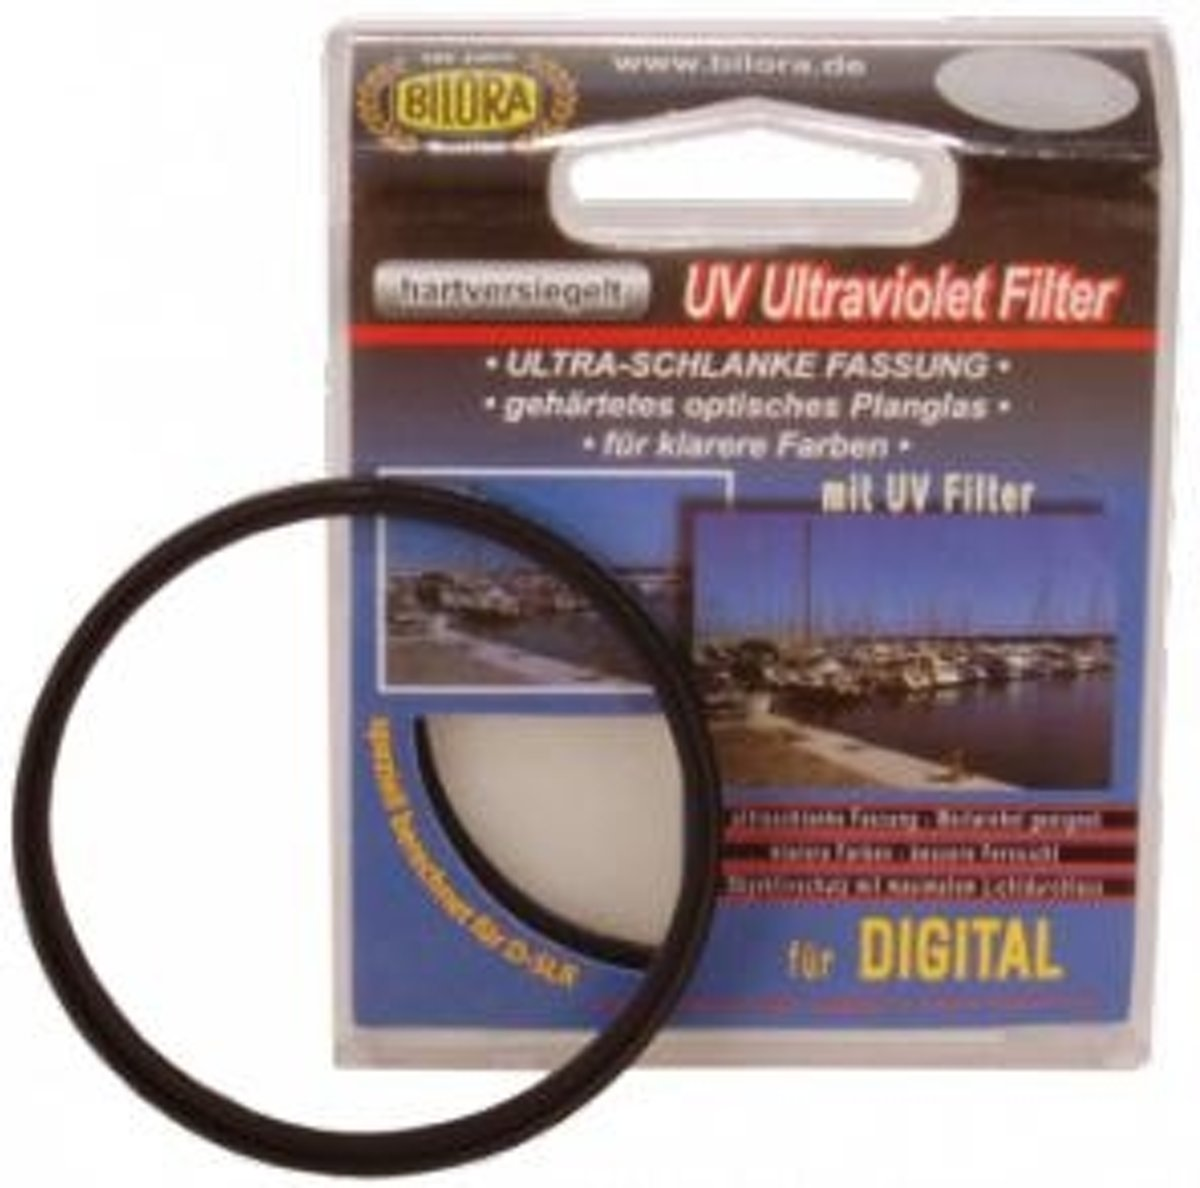 Bilora UV-filter standaard 67 mm